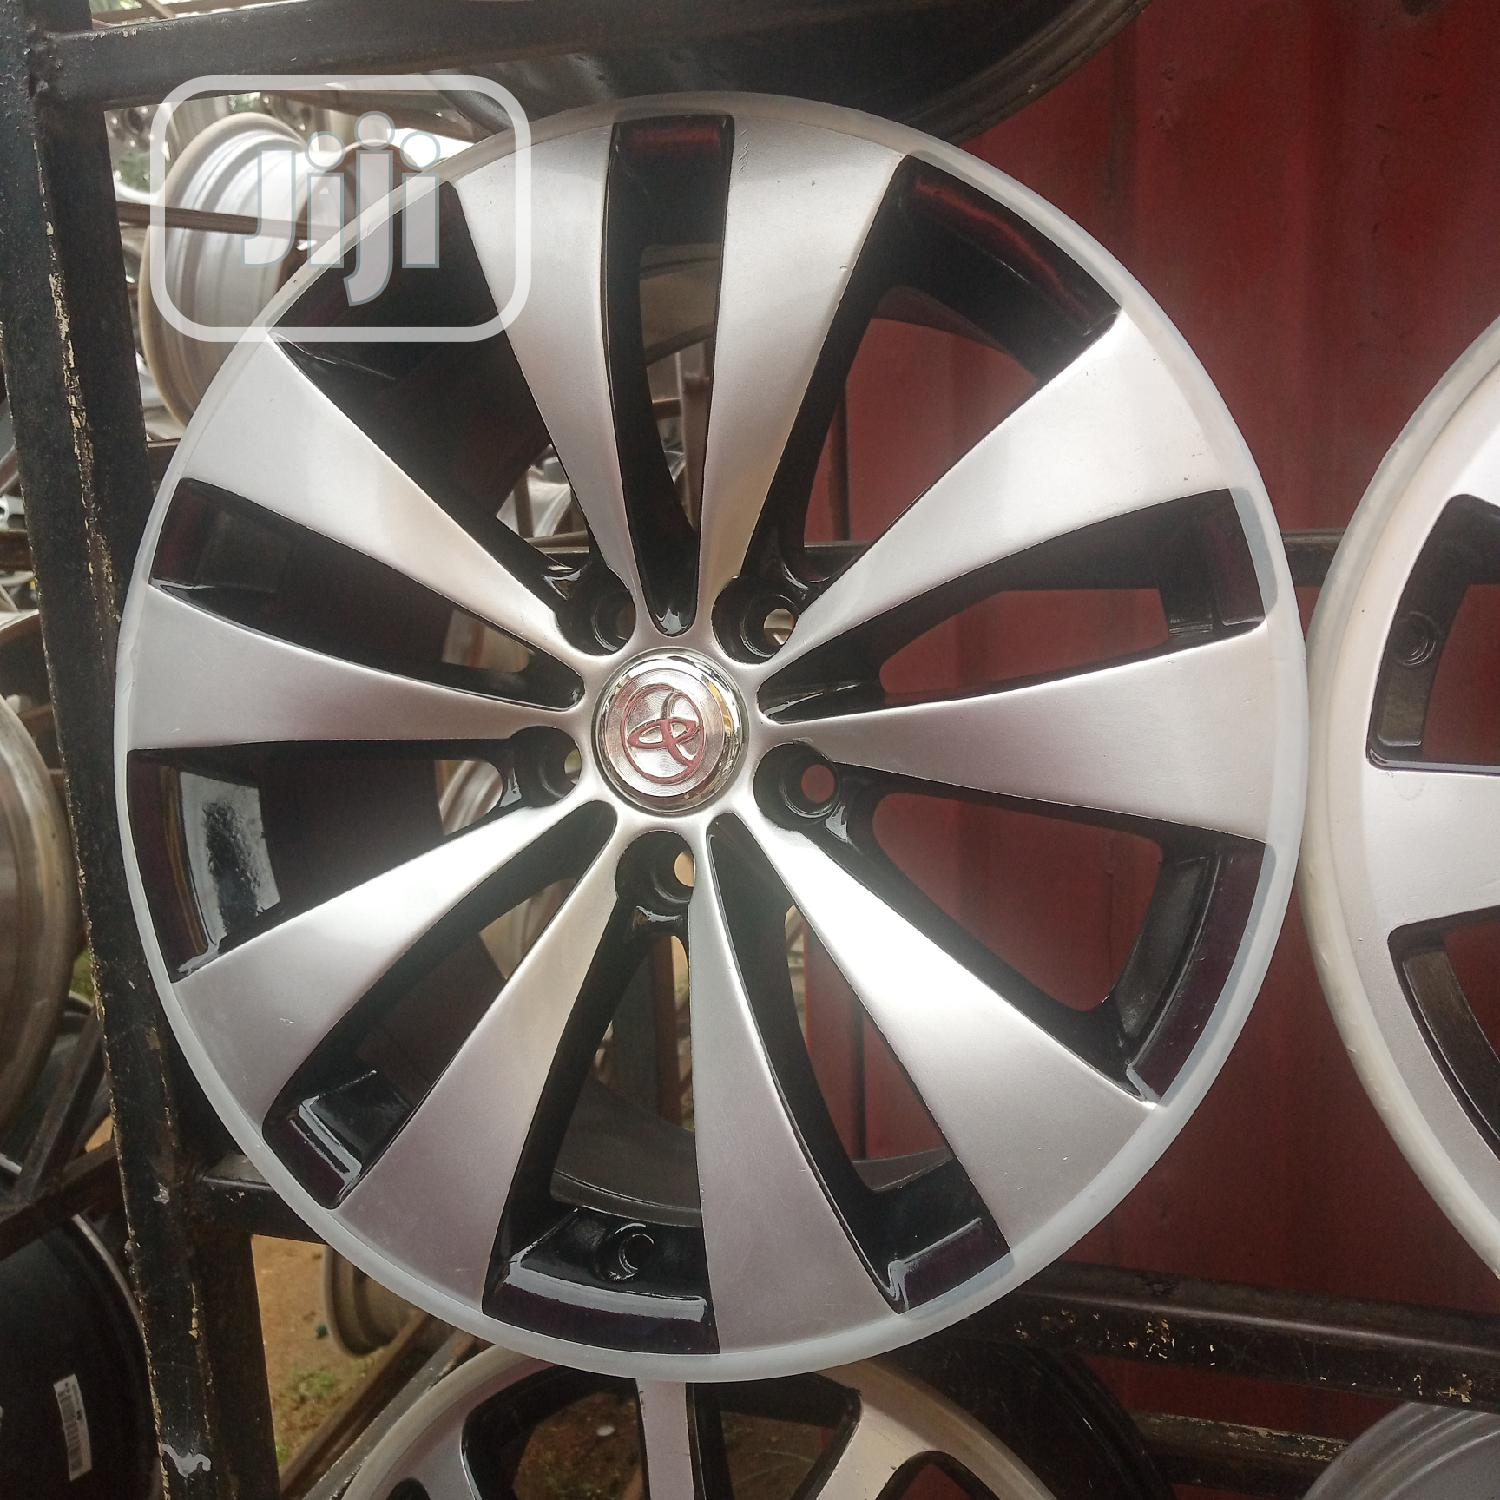 17 Rim For Muzzle | Vehicle Parts & Accessories for sale in Mushin, Lagos State, Nigeria